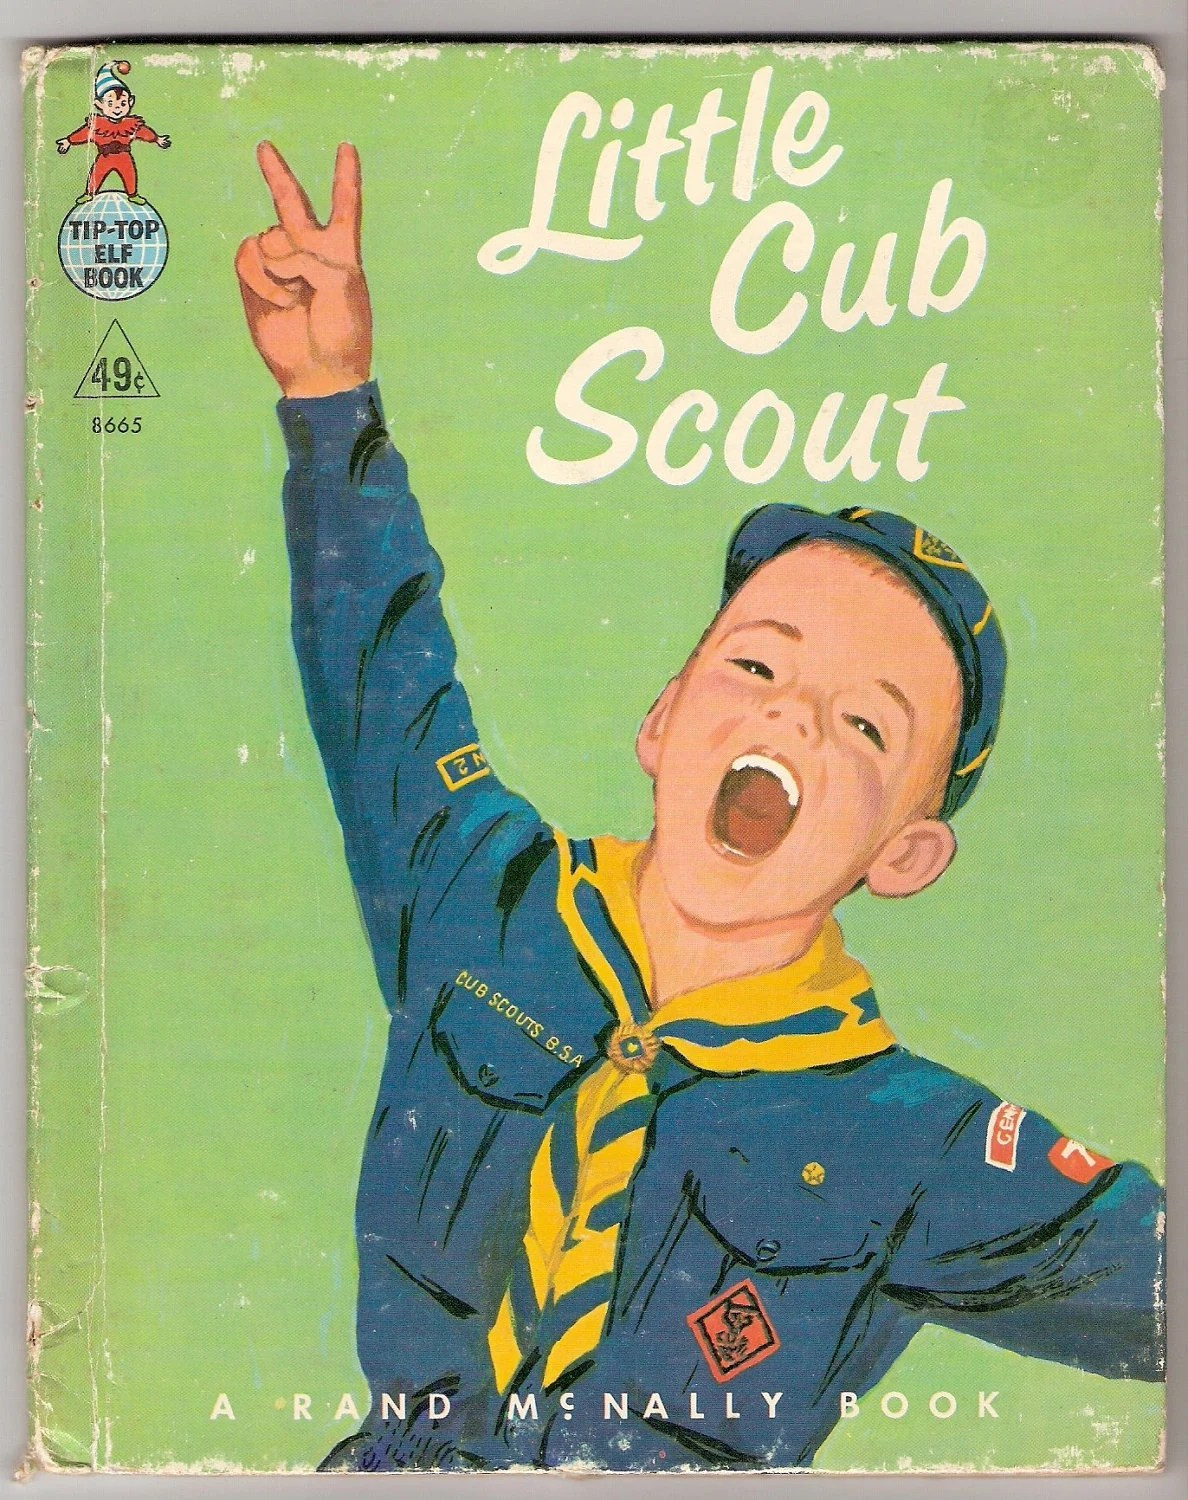 LITTLE CUB SCOUT Vintage Rand McNally Tip Top Elf Book